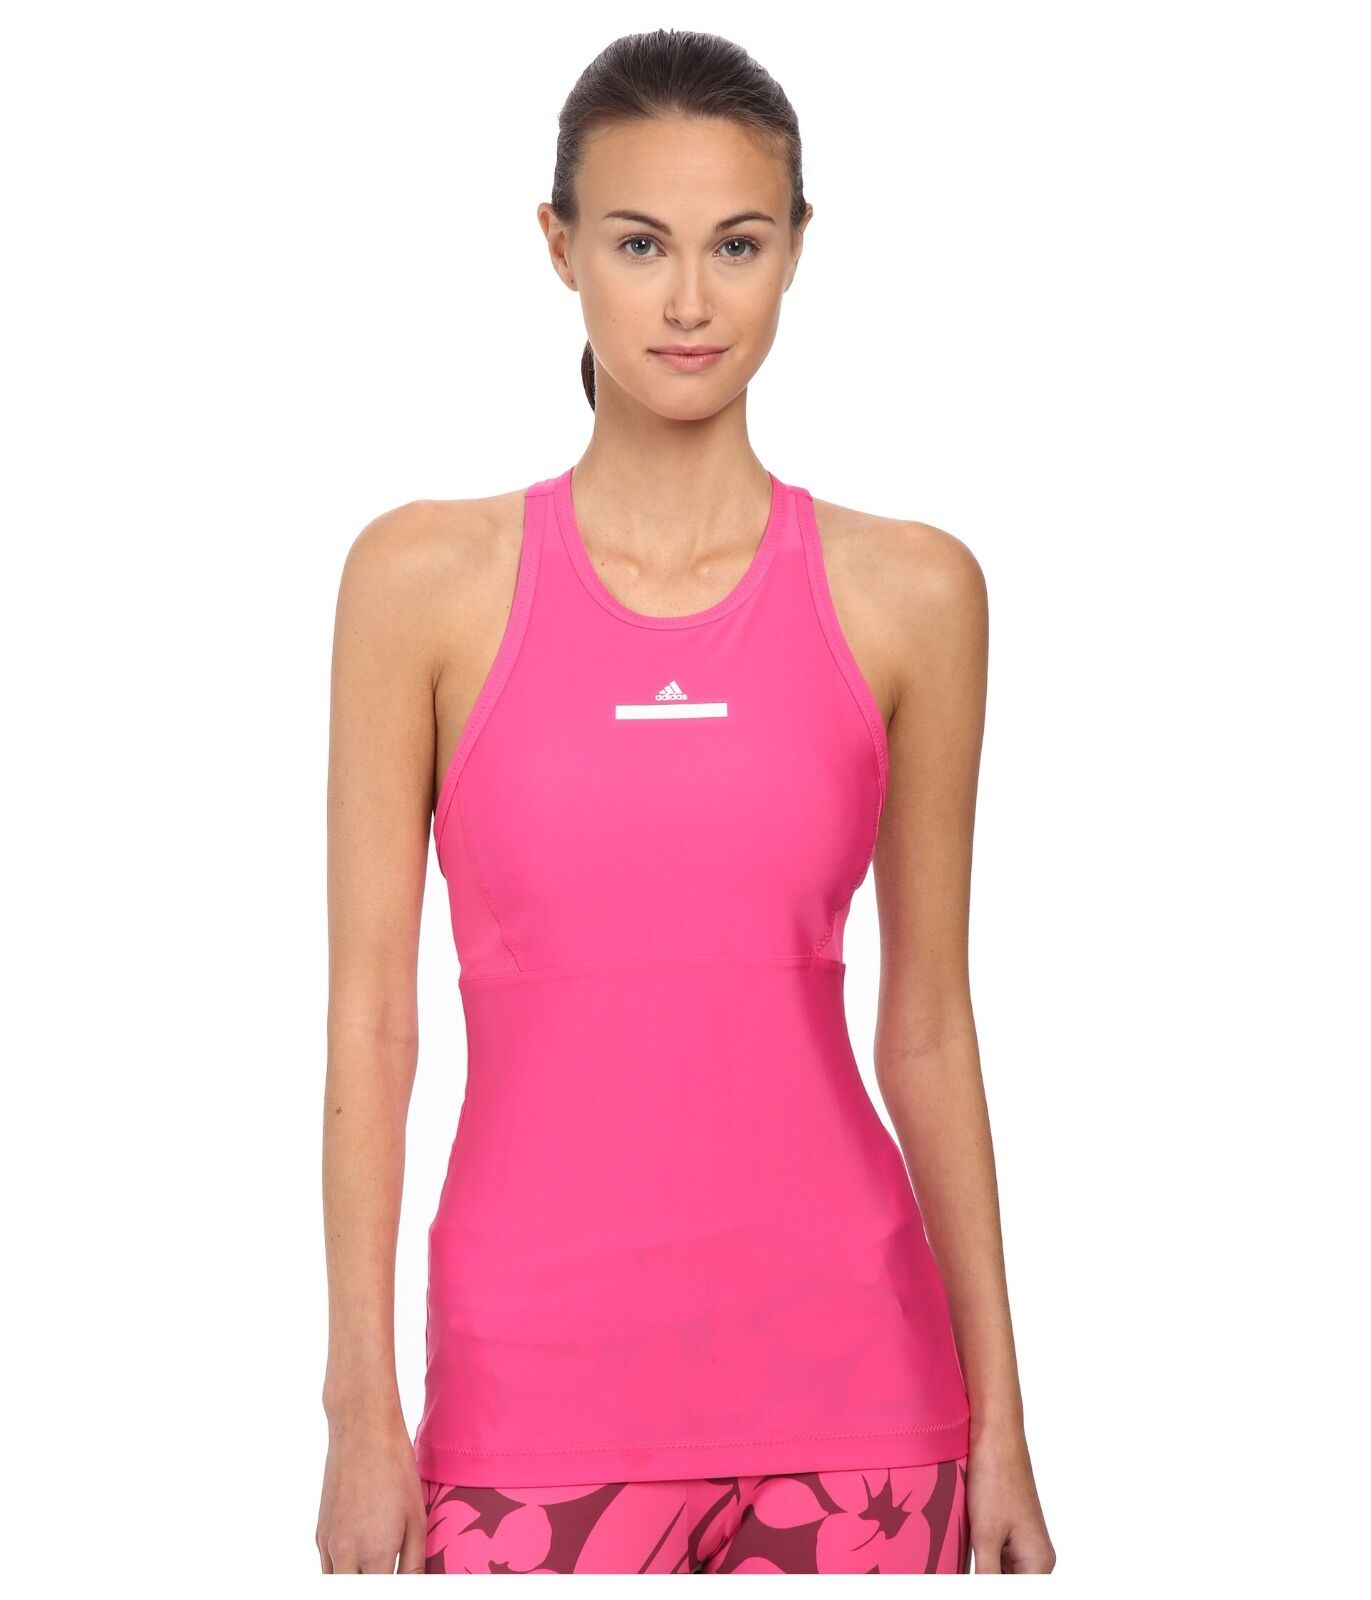 adidas by Stella McCartney Débardeur UV Perf UV HOT PINK UPF 15 pour femmes, taille L